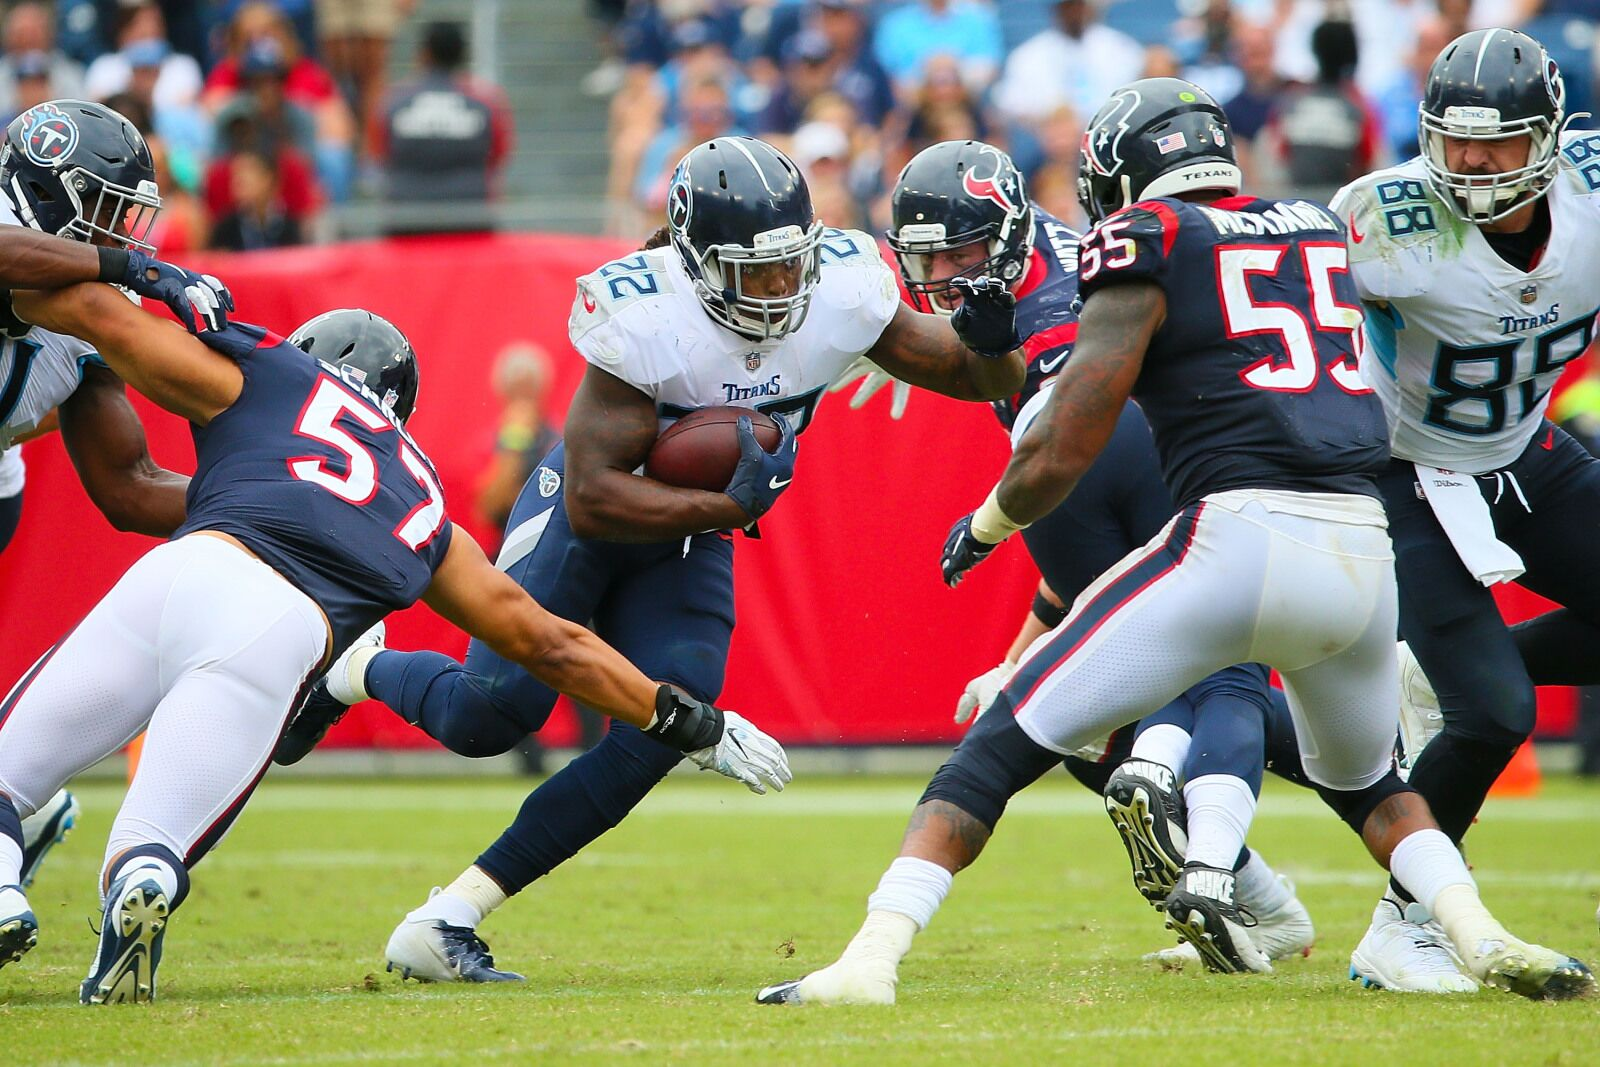 Houston Texans vs. Tennessee Titans: 5 Bold predictions for Week 15